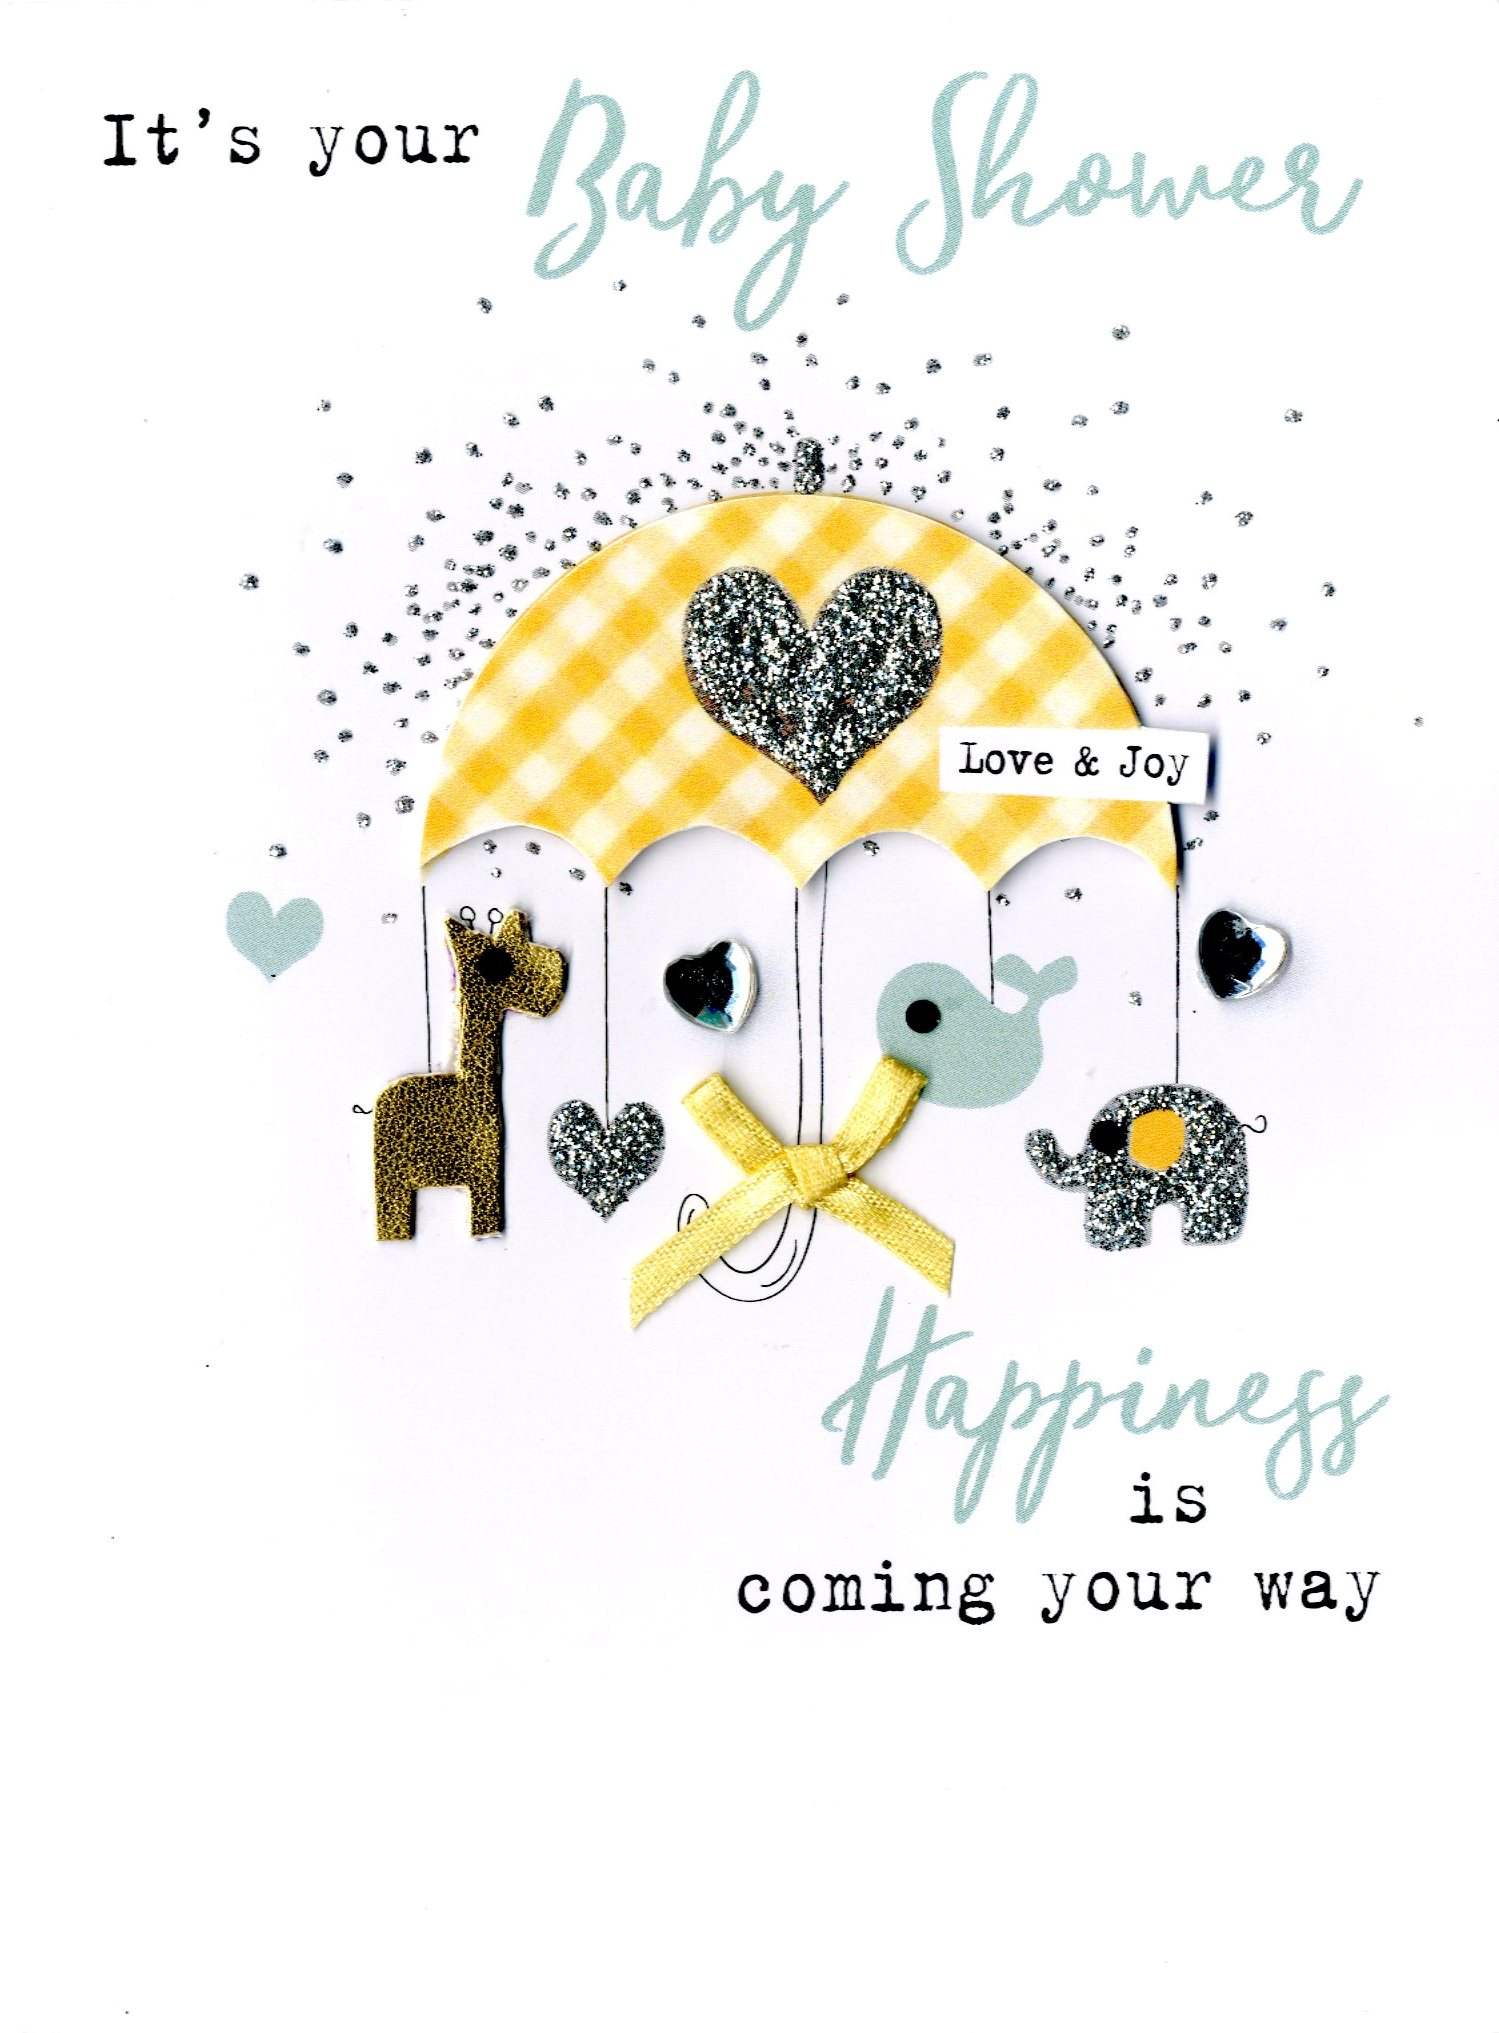 Its your baby shower irresistible greeting card cards love its your baby shower irresistible greeting card m4hsunfo